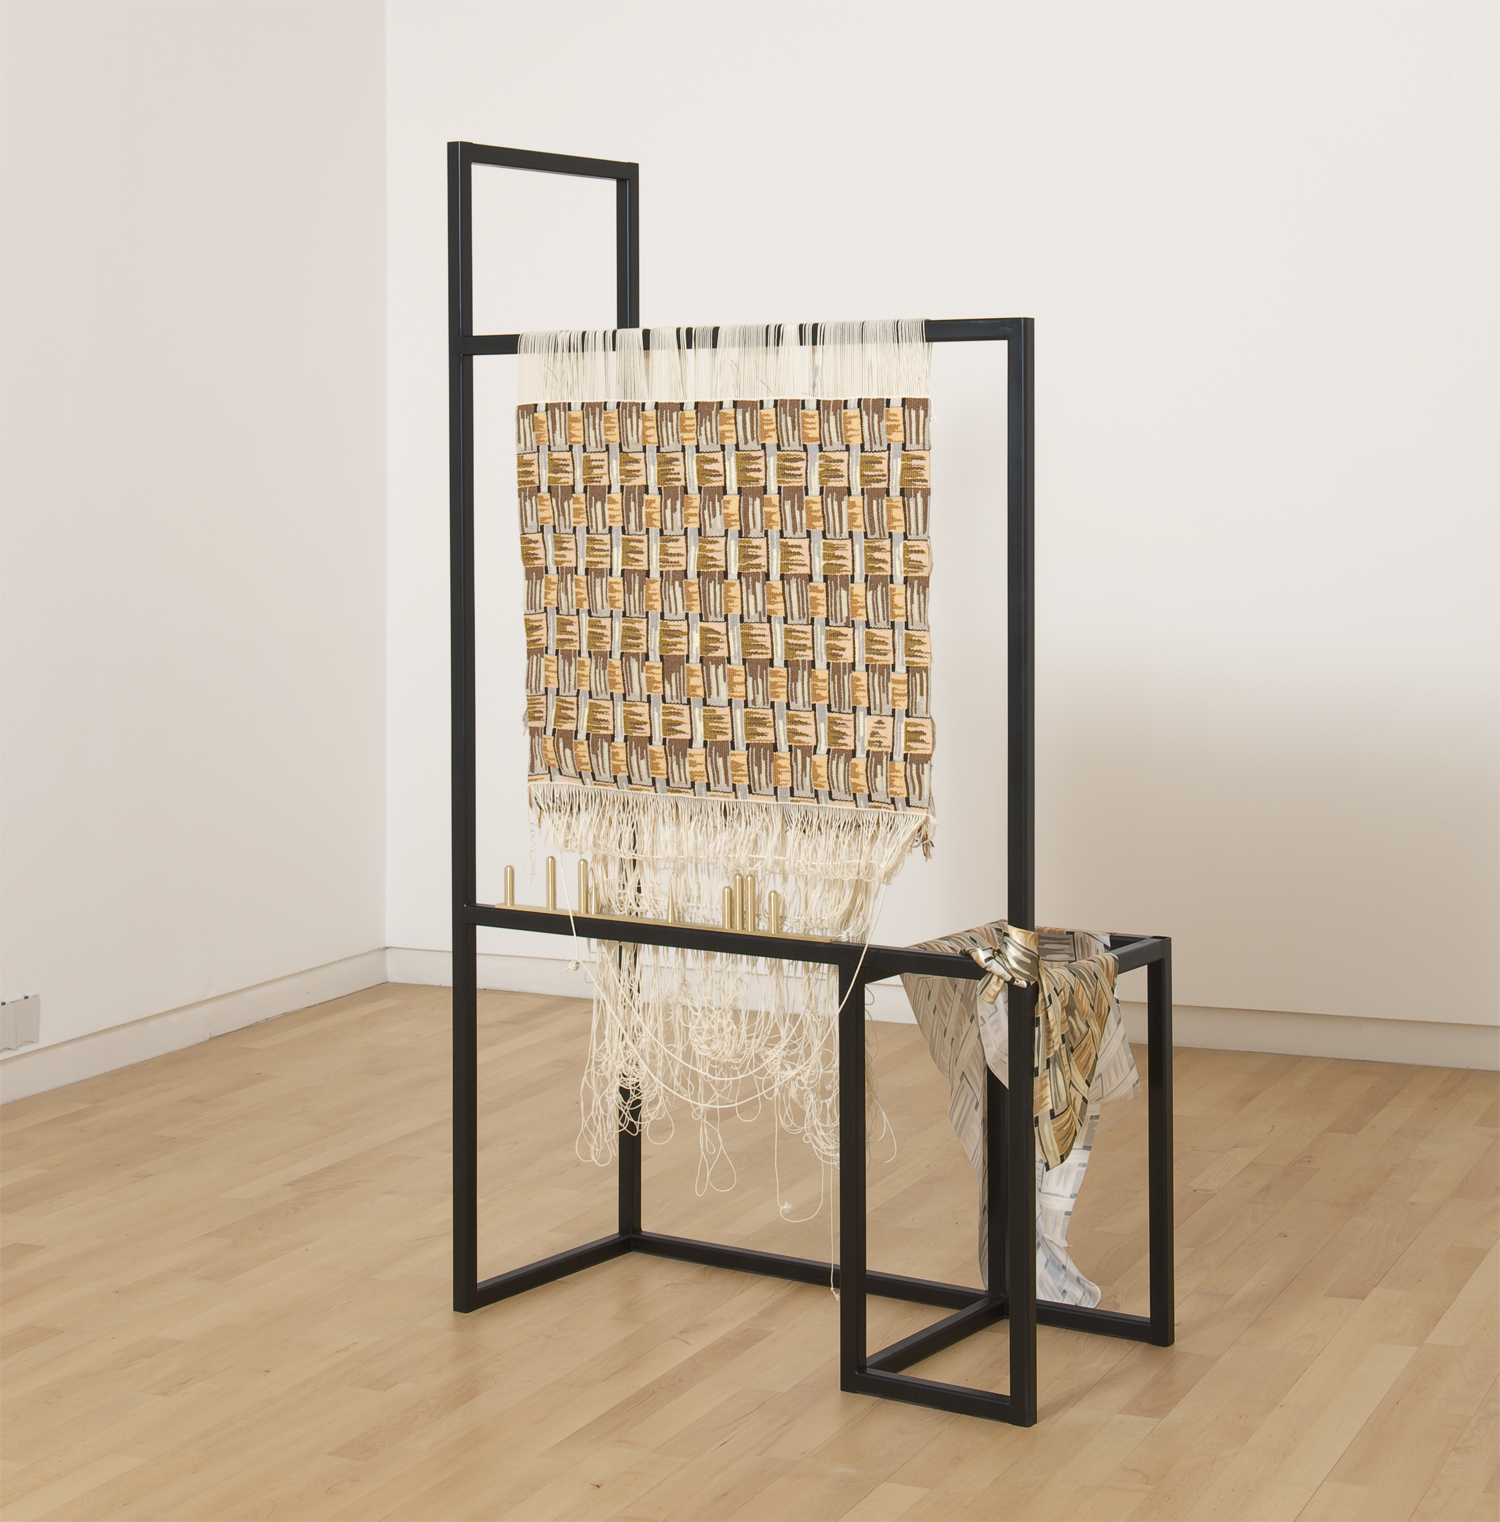 Claire Barclay / Daughters of Penelope